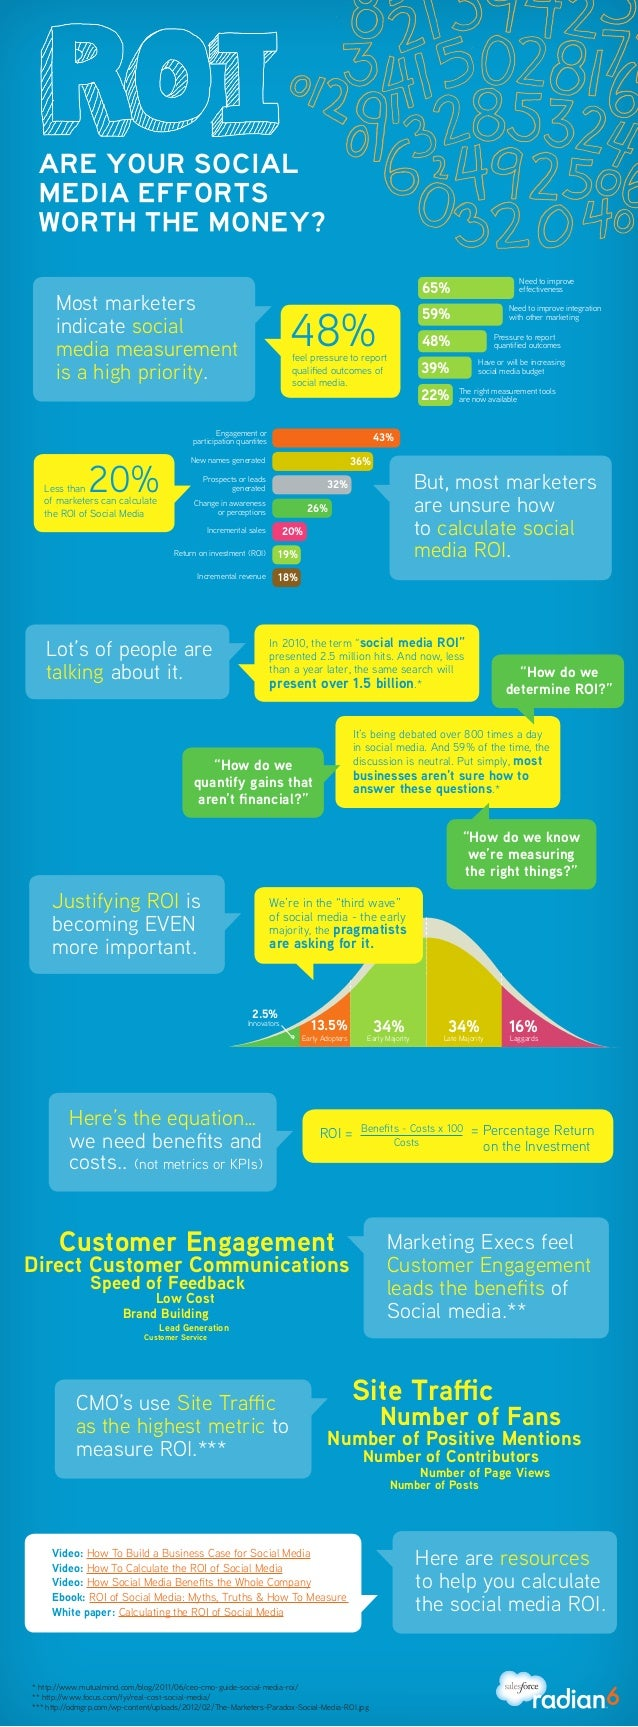 ROI of Social Media: Myths, Truths and How To Measure